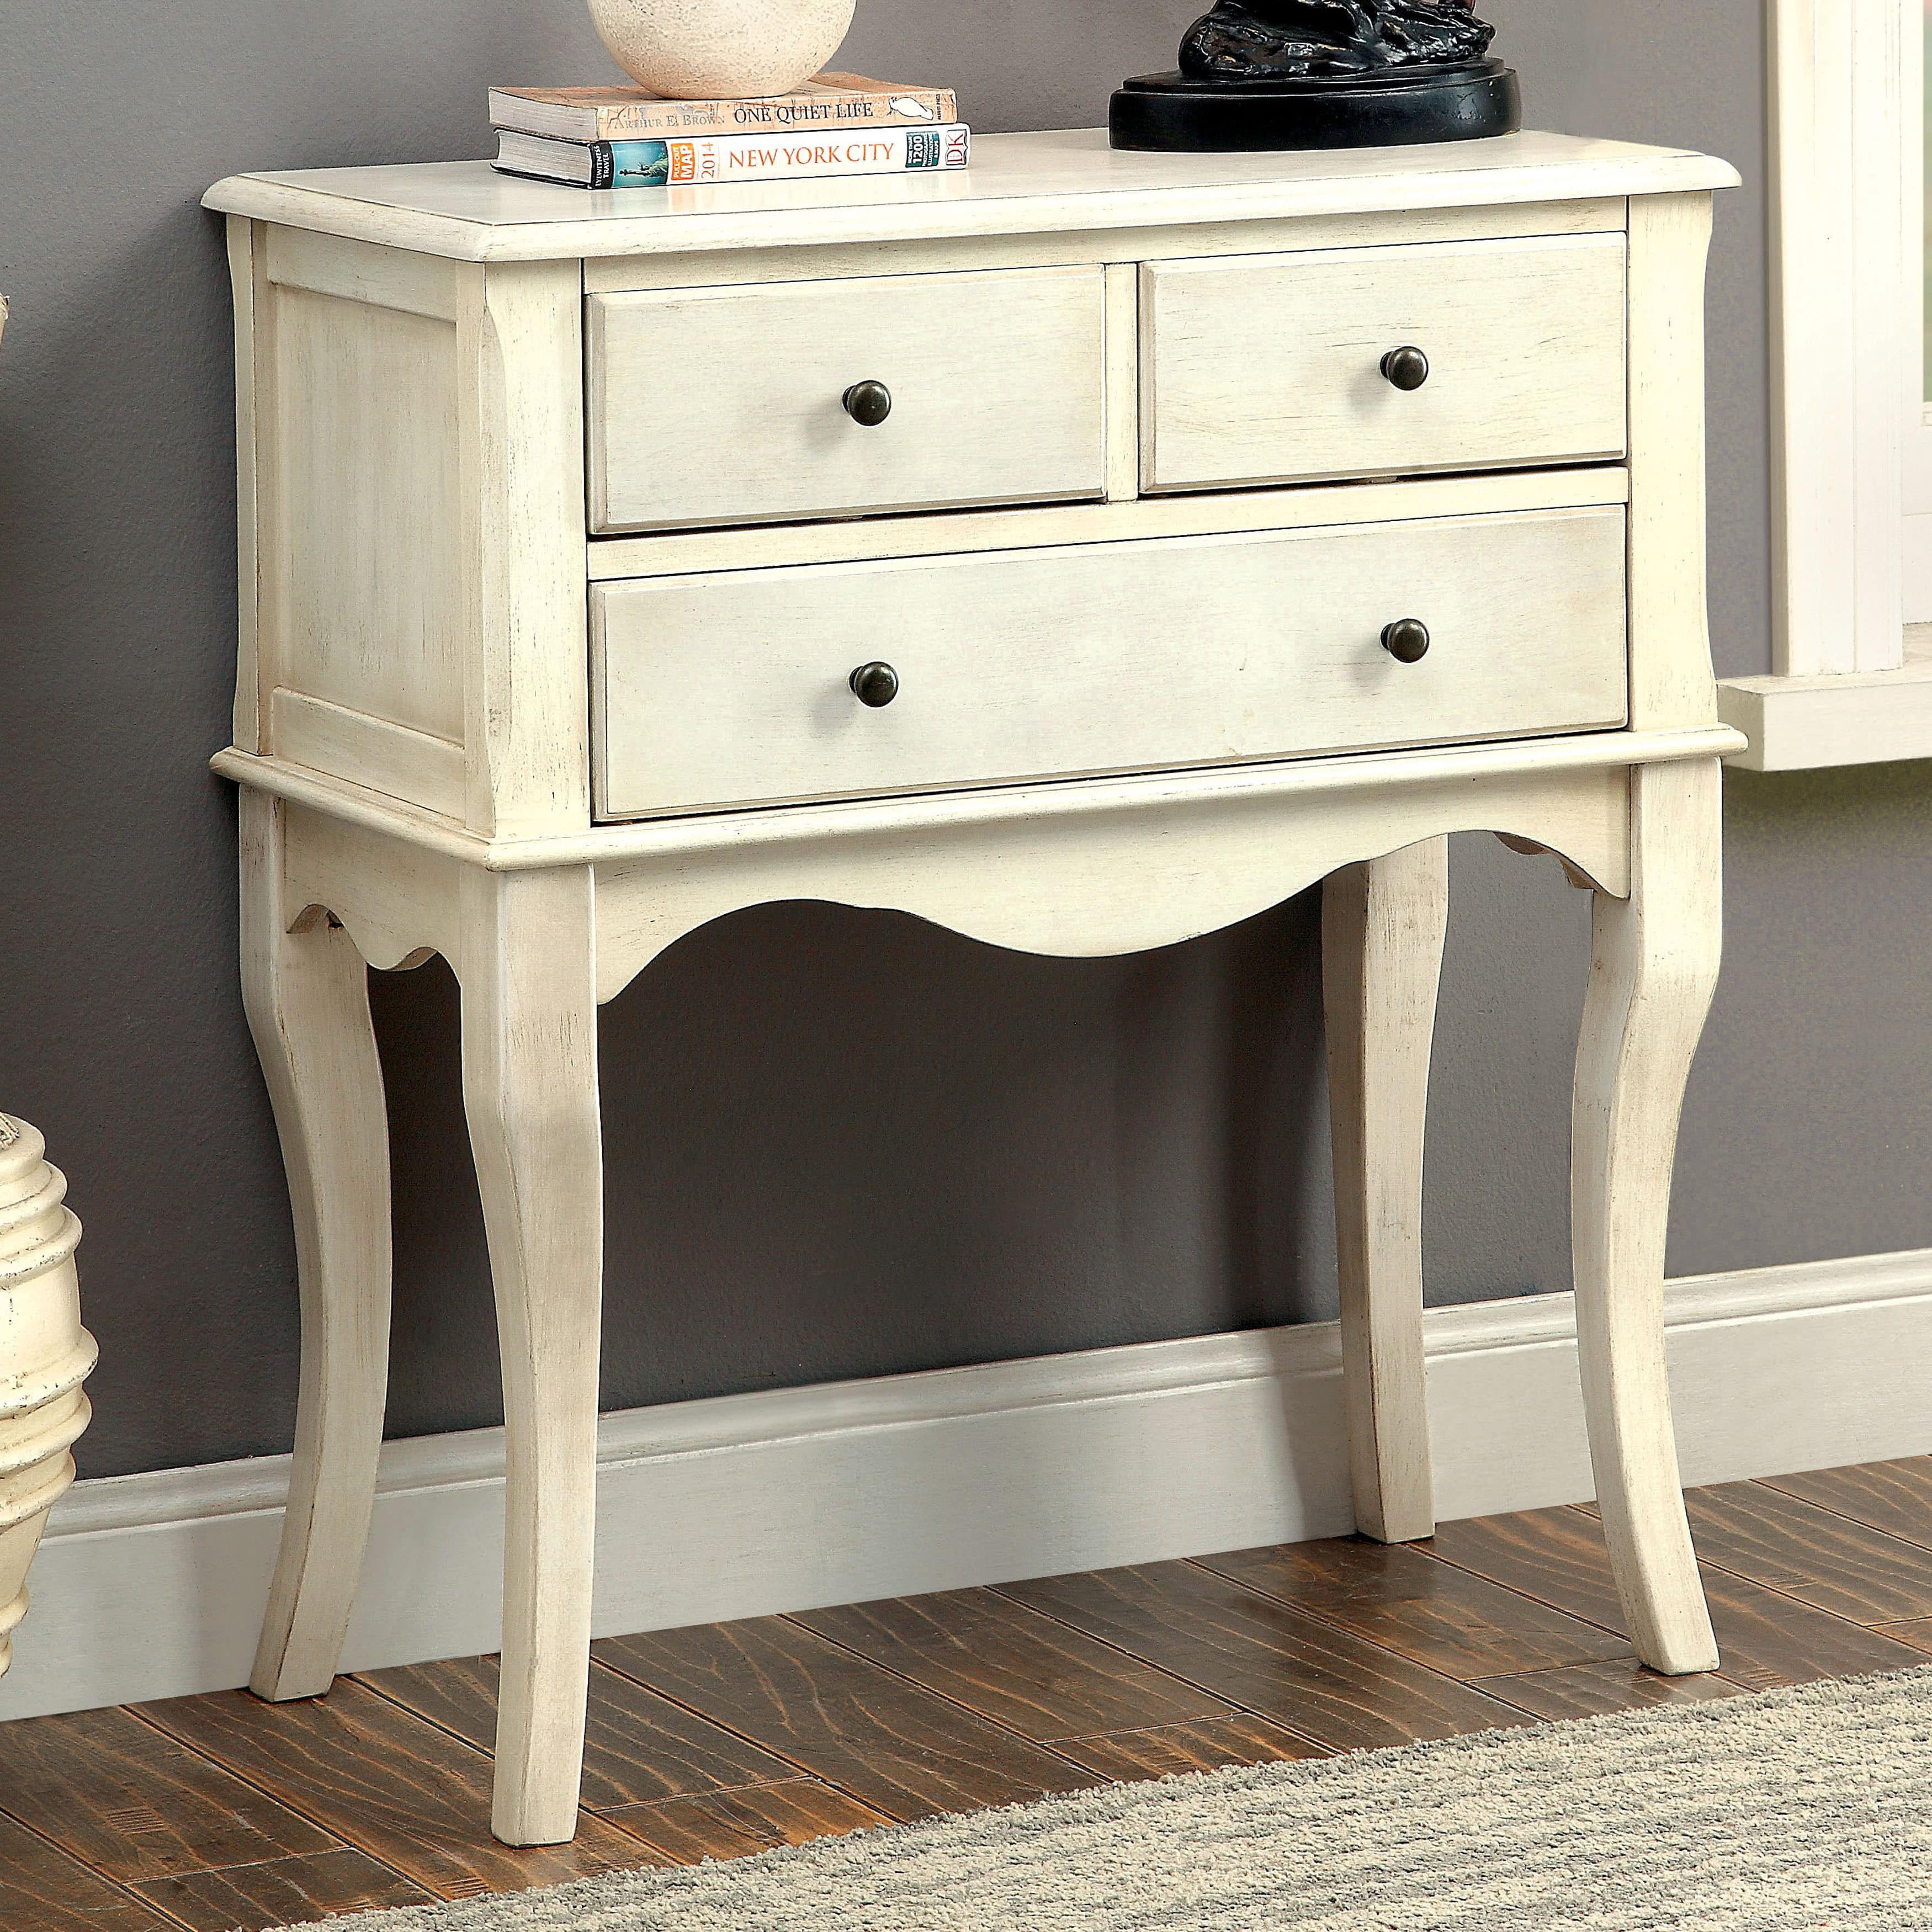 entrance table with drawers. Furniture Of America Eloisa Vintage Style 3-drawer Hallway Table Entrance With Drawers B